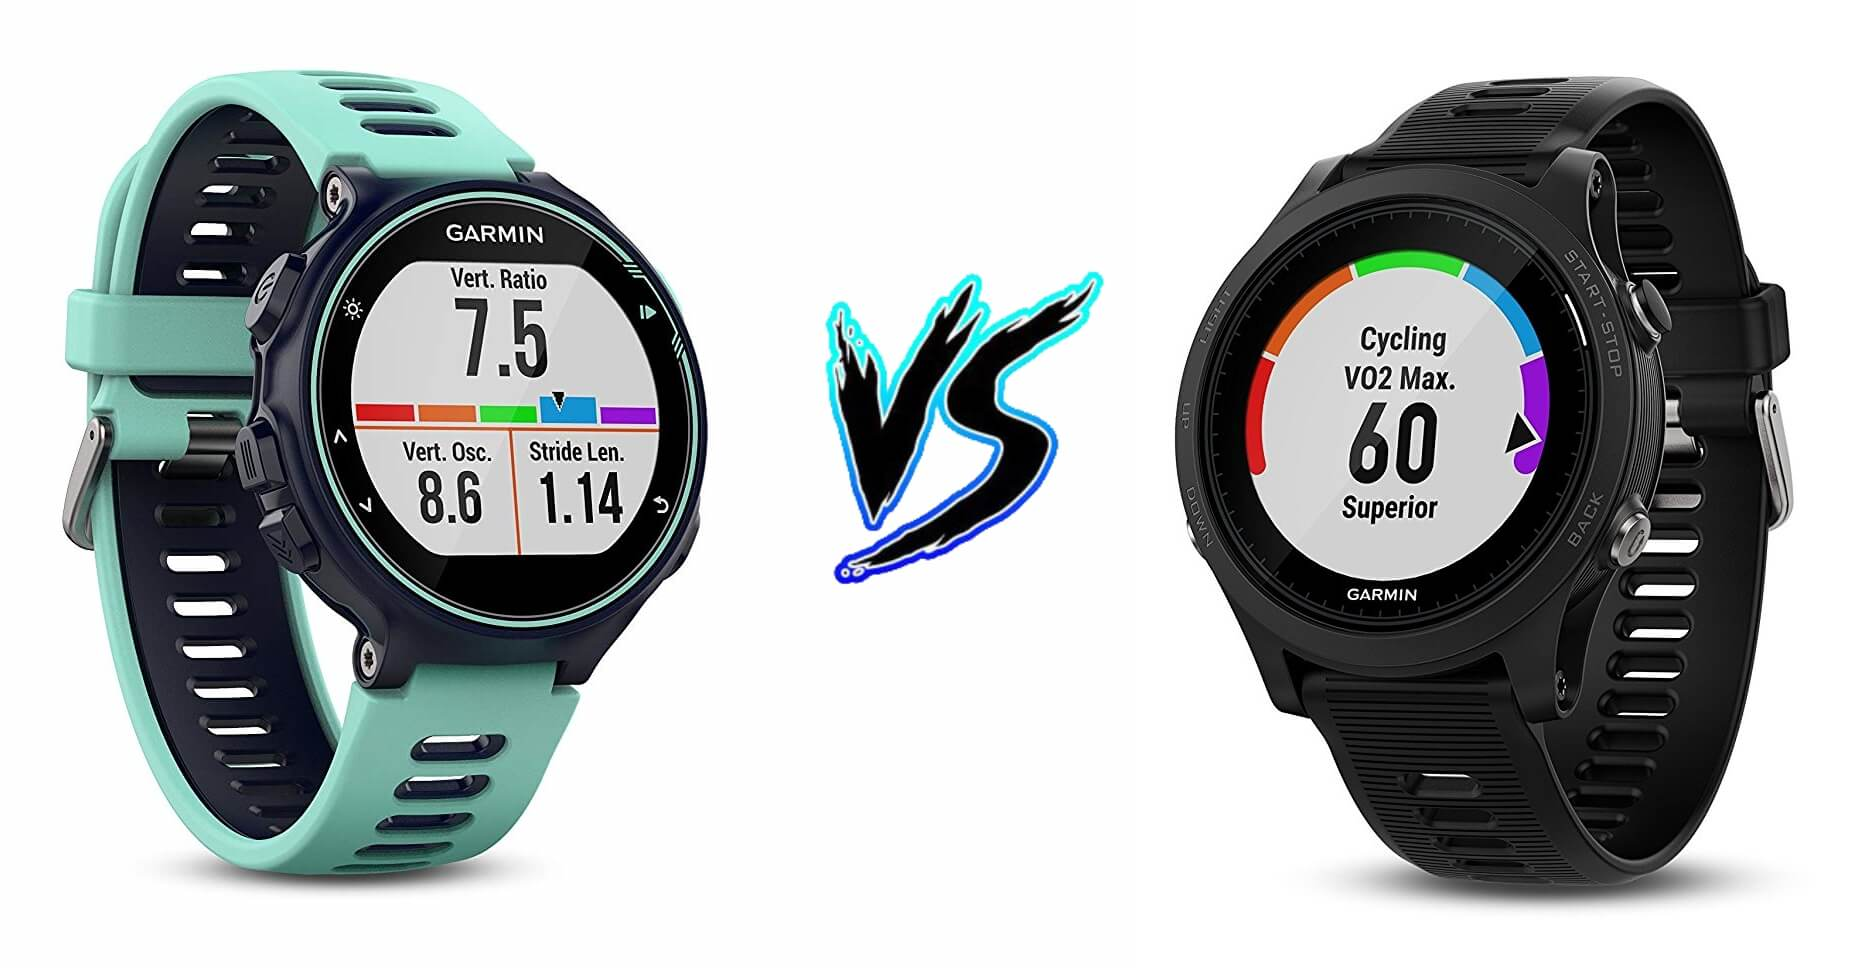 Garmin Forerunner 735xt Vs Garmin Forerunner 935 Which Is Better